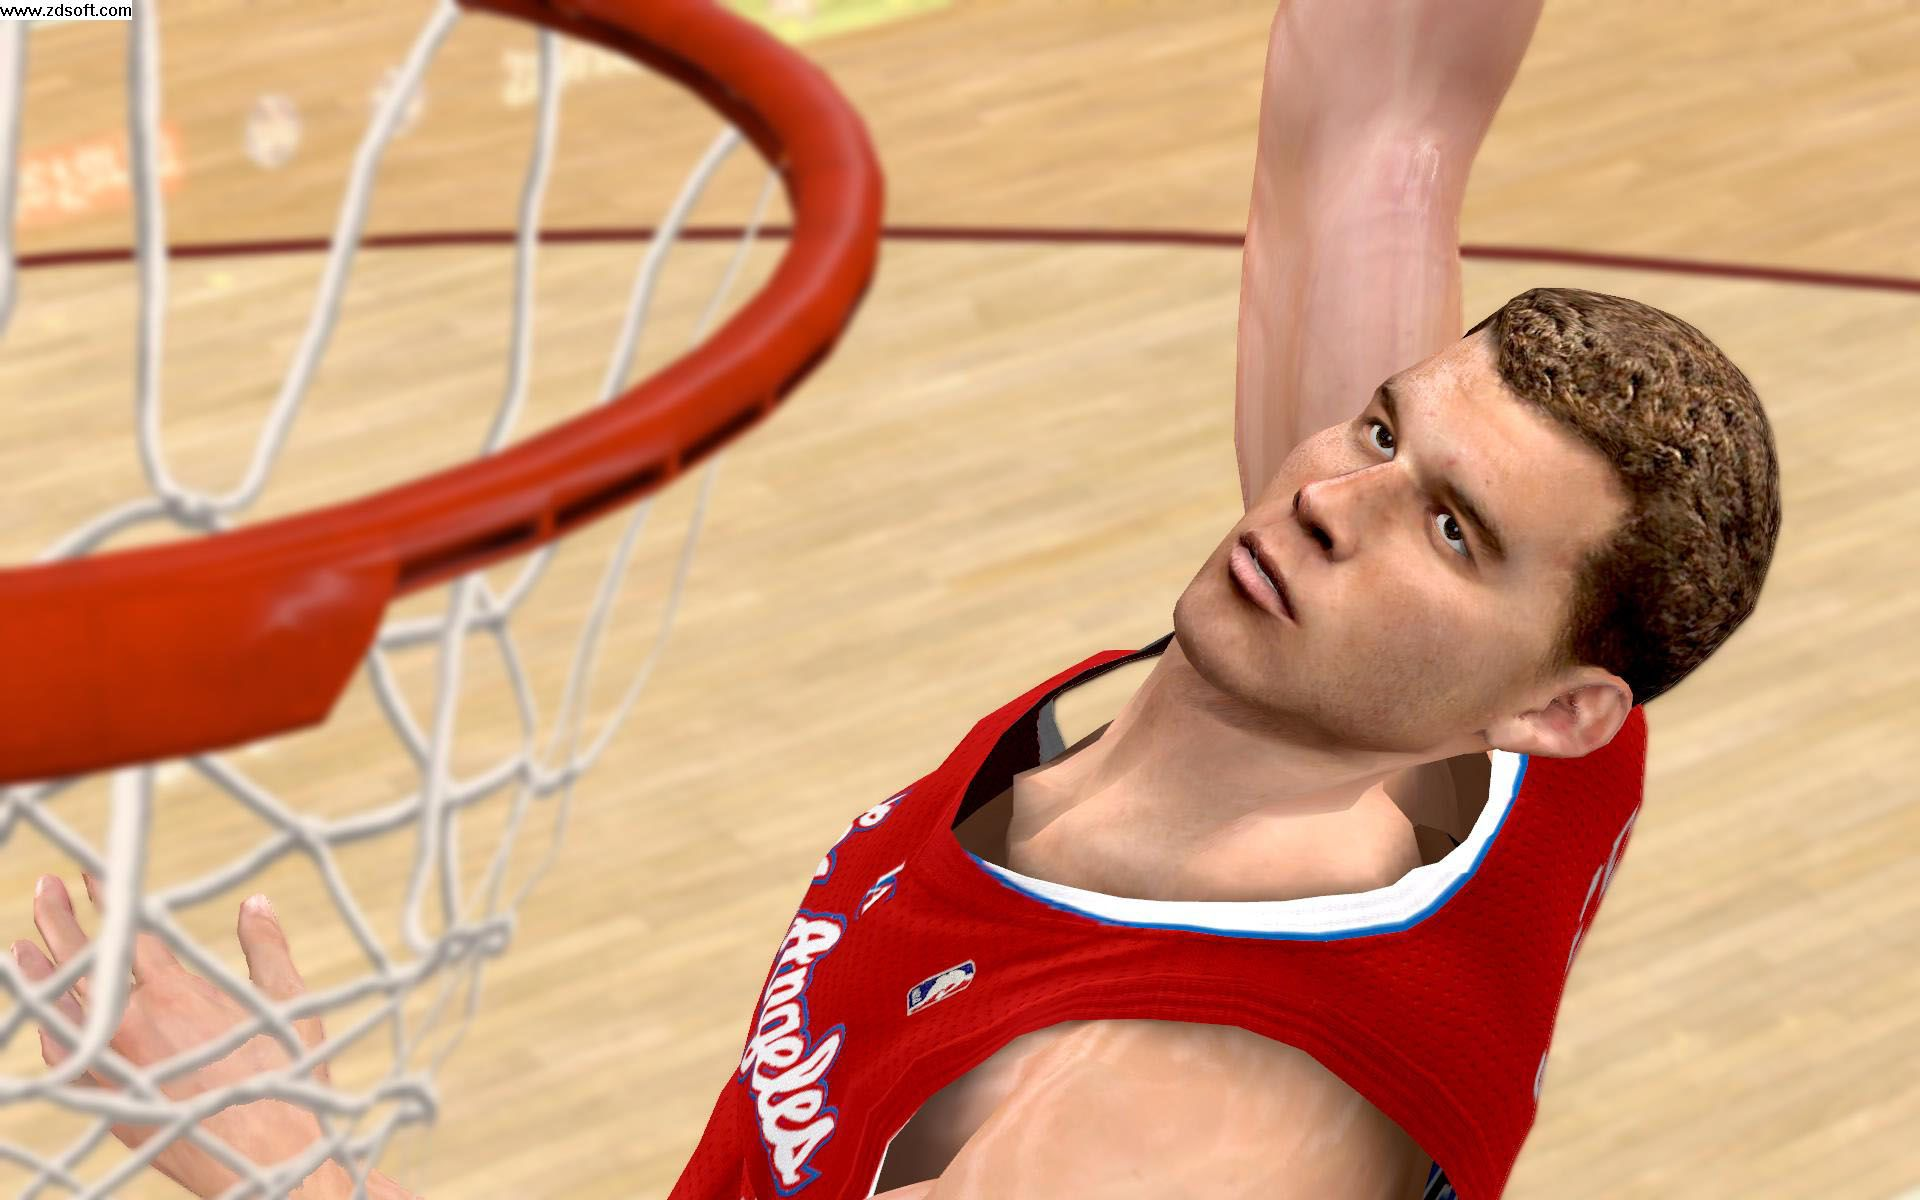 Nba 2k12 Cyber Faces Blake Griffin Cyber Face 2 Versions Nba 2k12